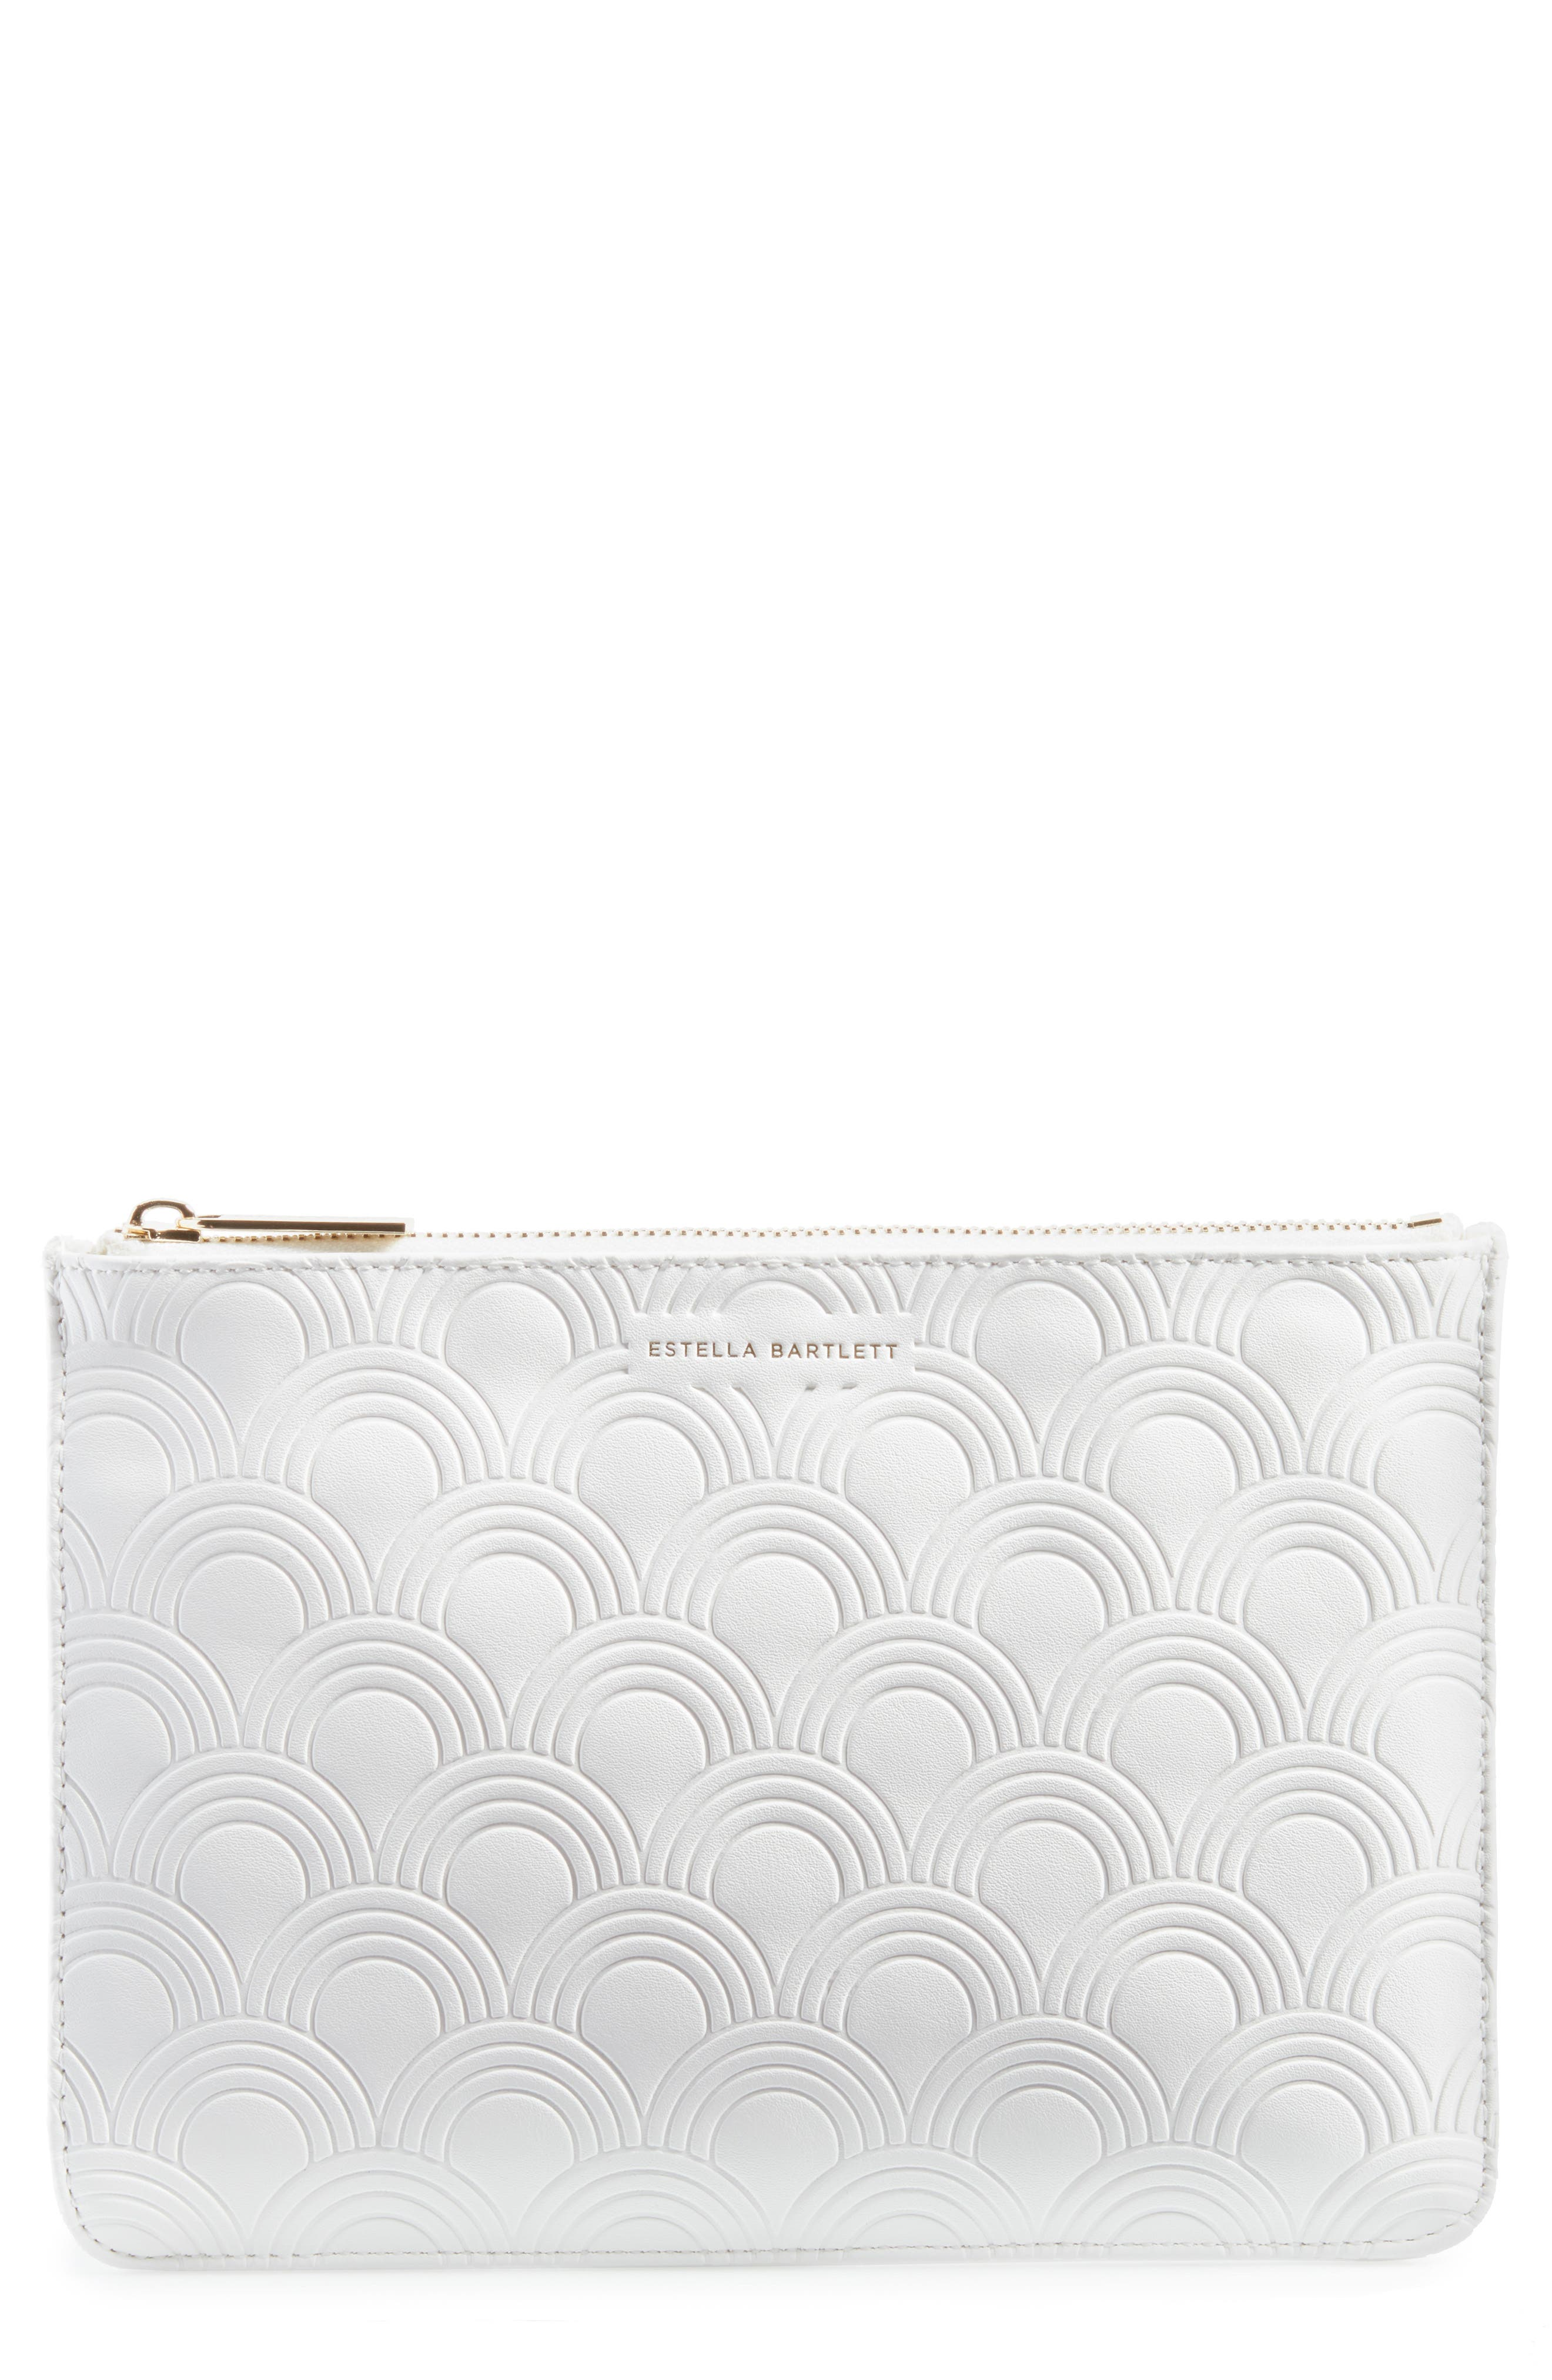 Medium Embossed Faux Leather Pouch,                             Main thumbnail 1, color,